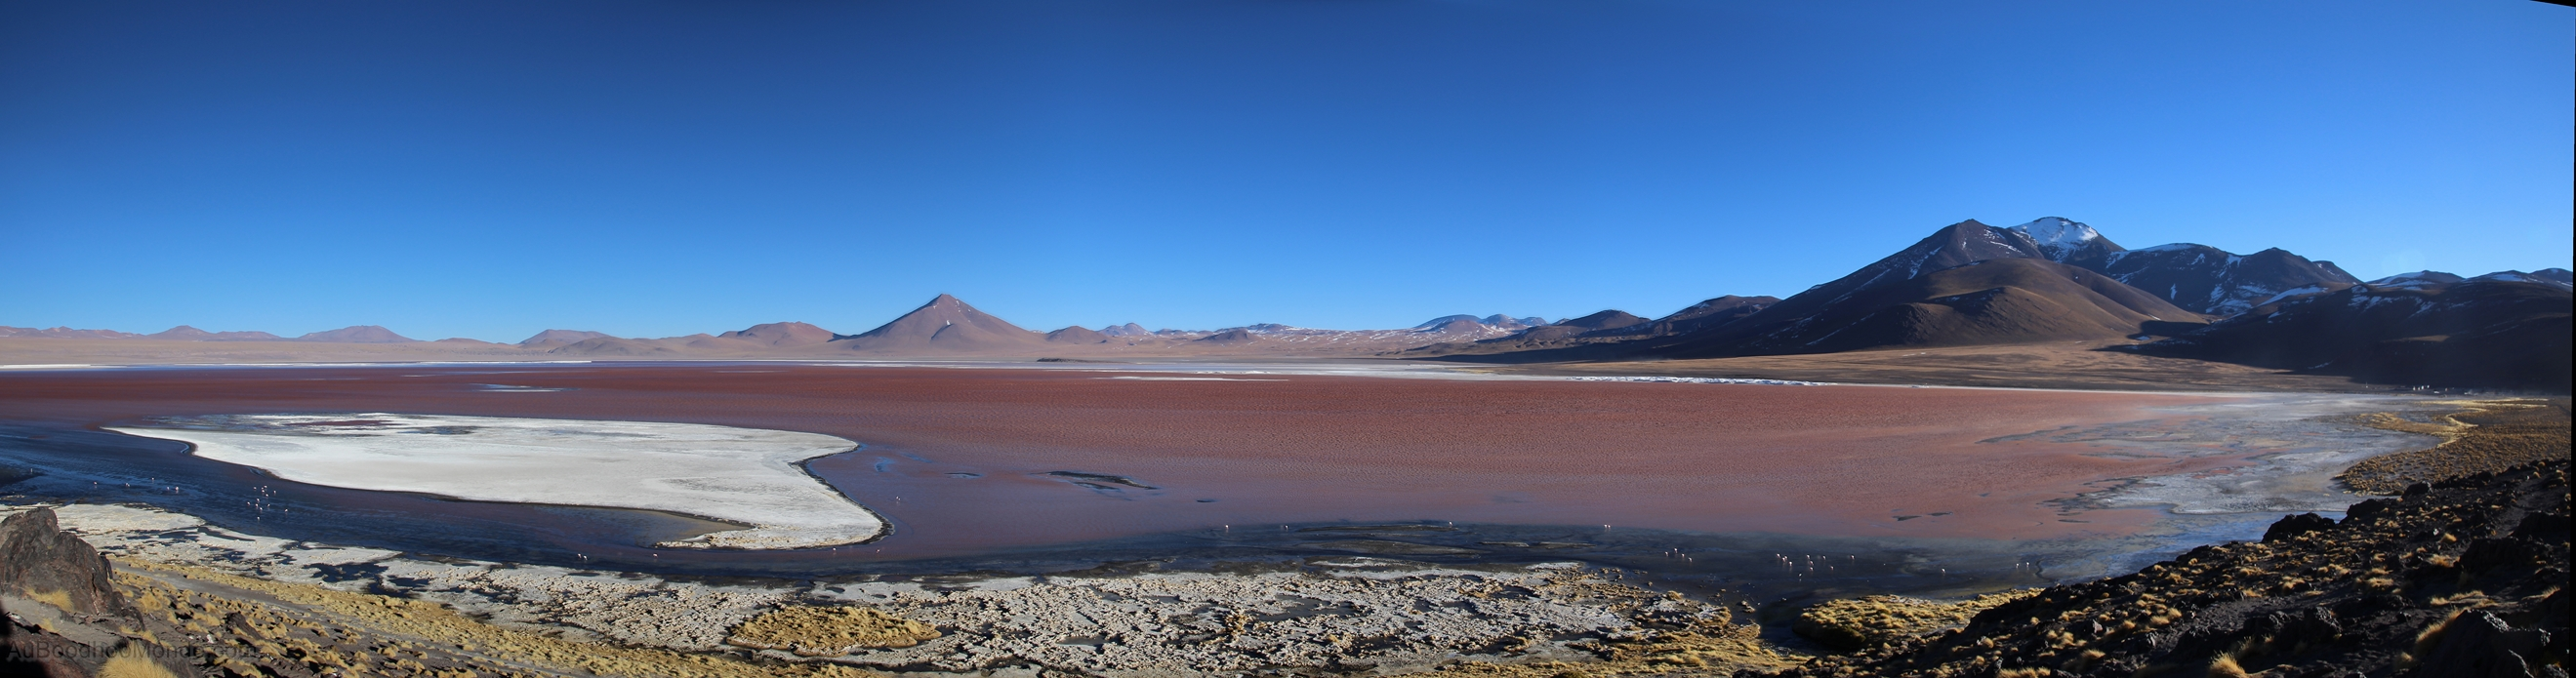 Bolivie - Laguna colorada Sud Lipez